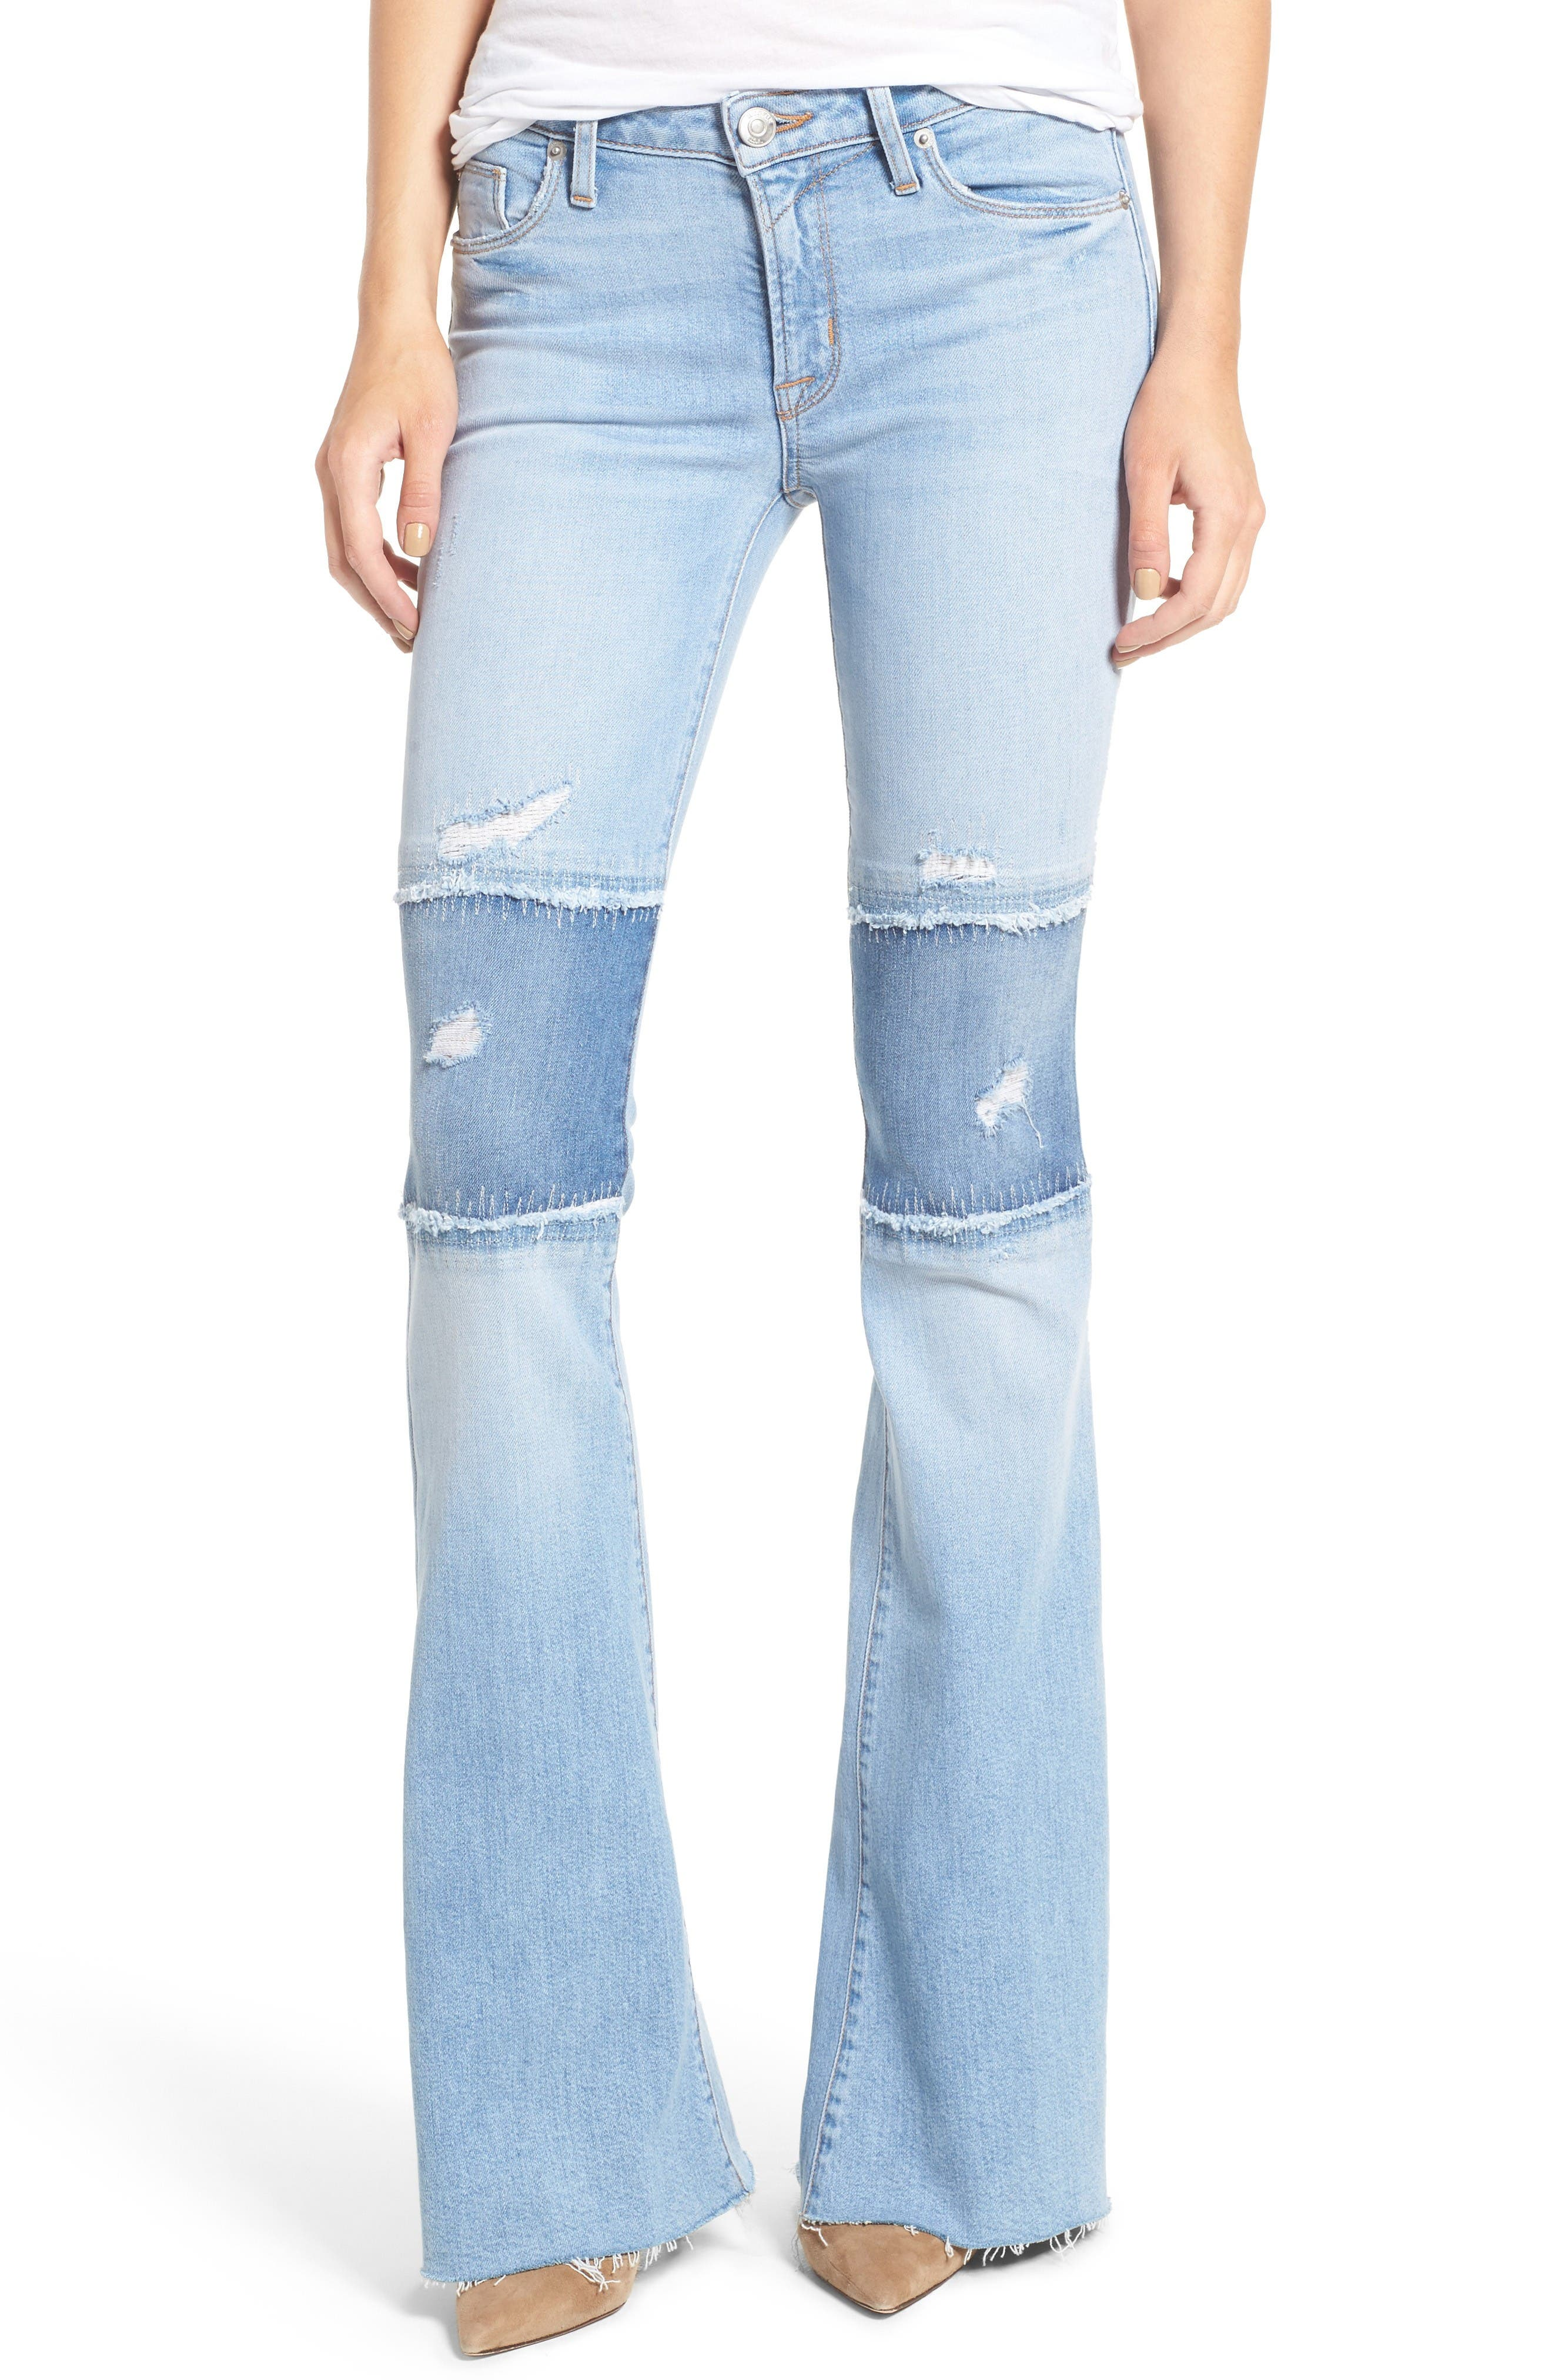 Alternate Image 1 Selected - Hudson Jeans Mia Patchwork Flare Jeans (Royal Delta)